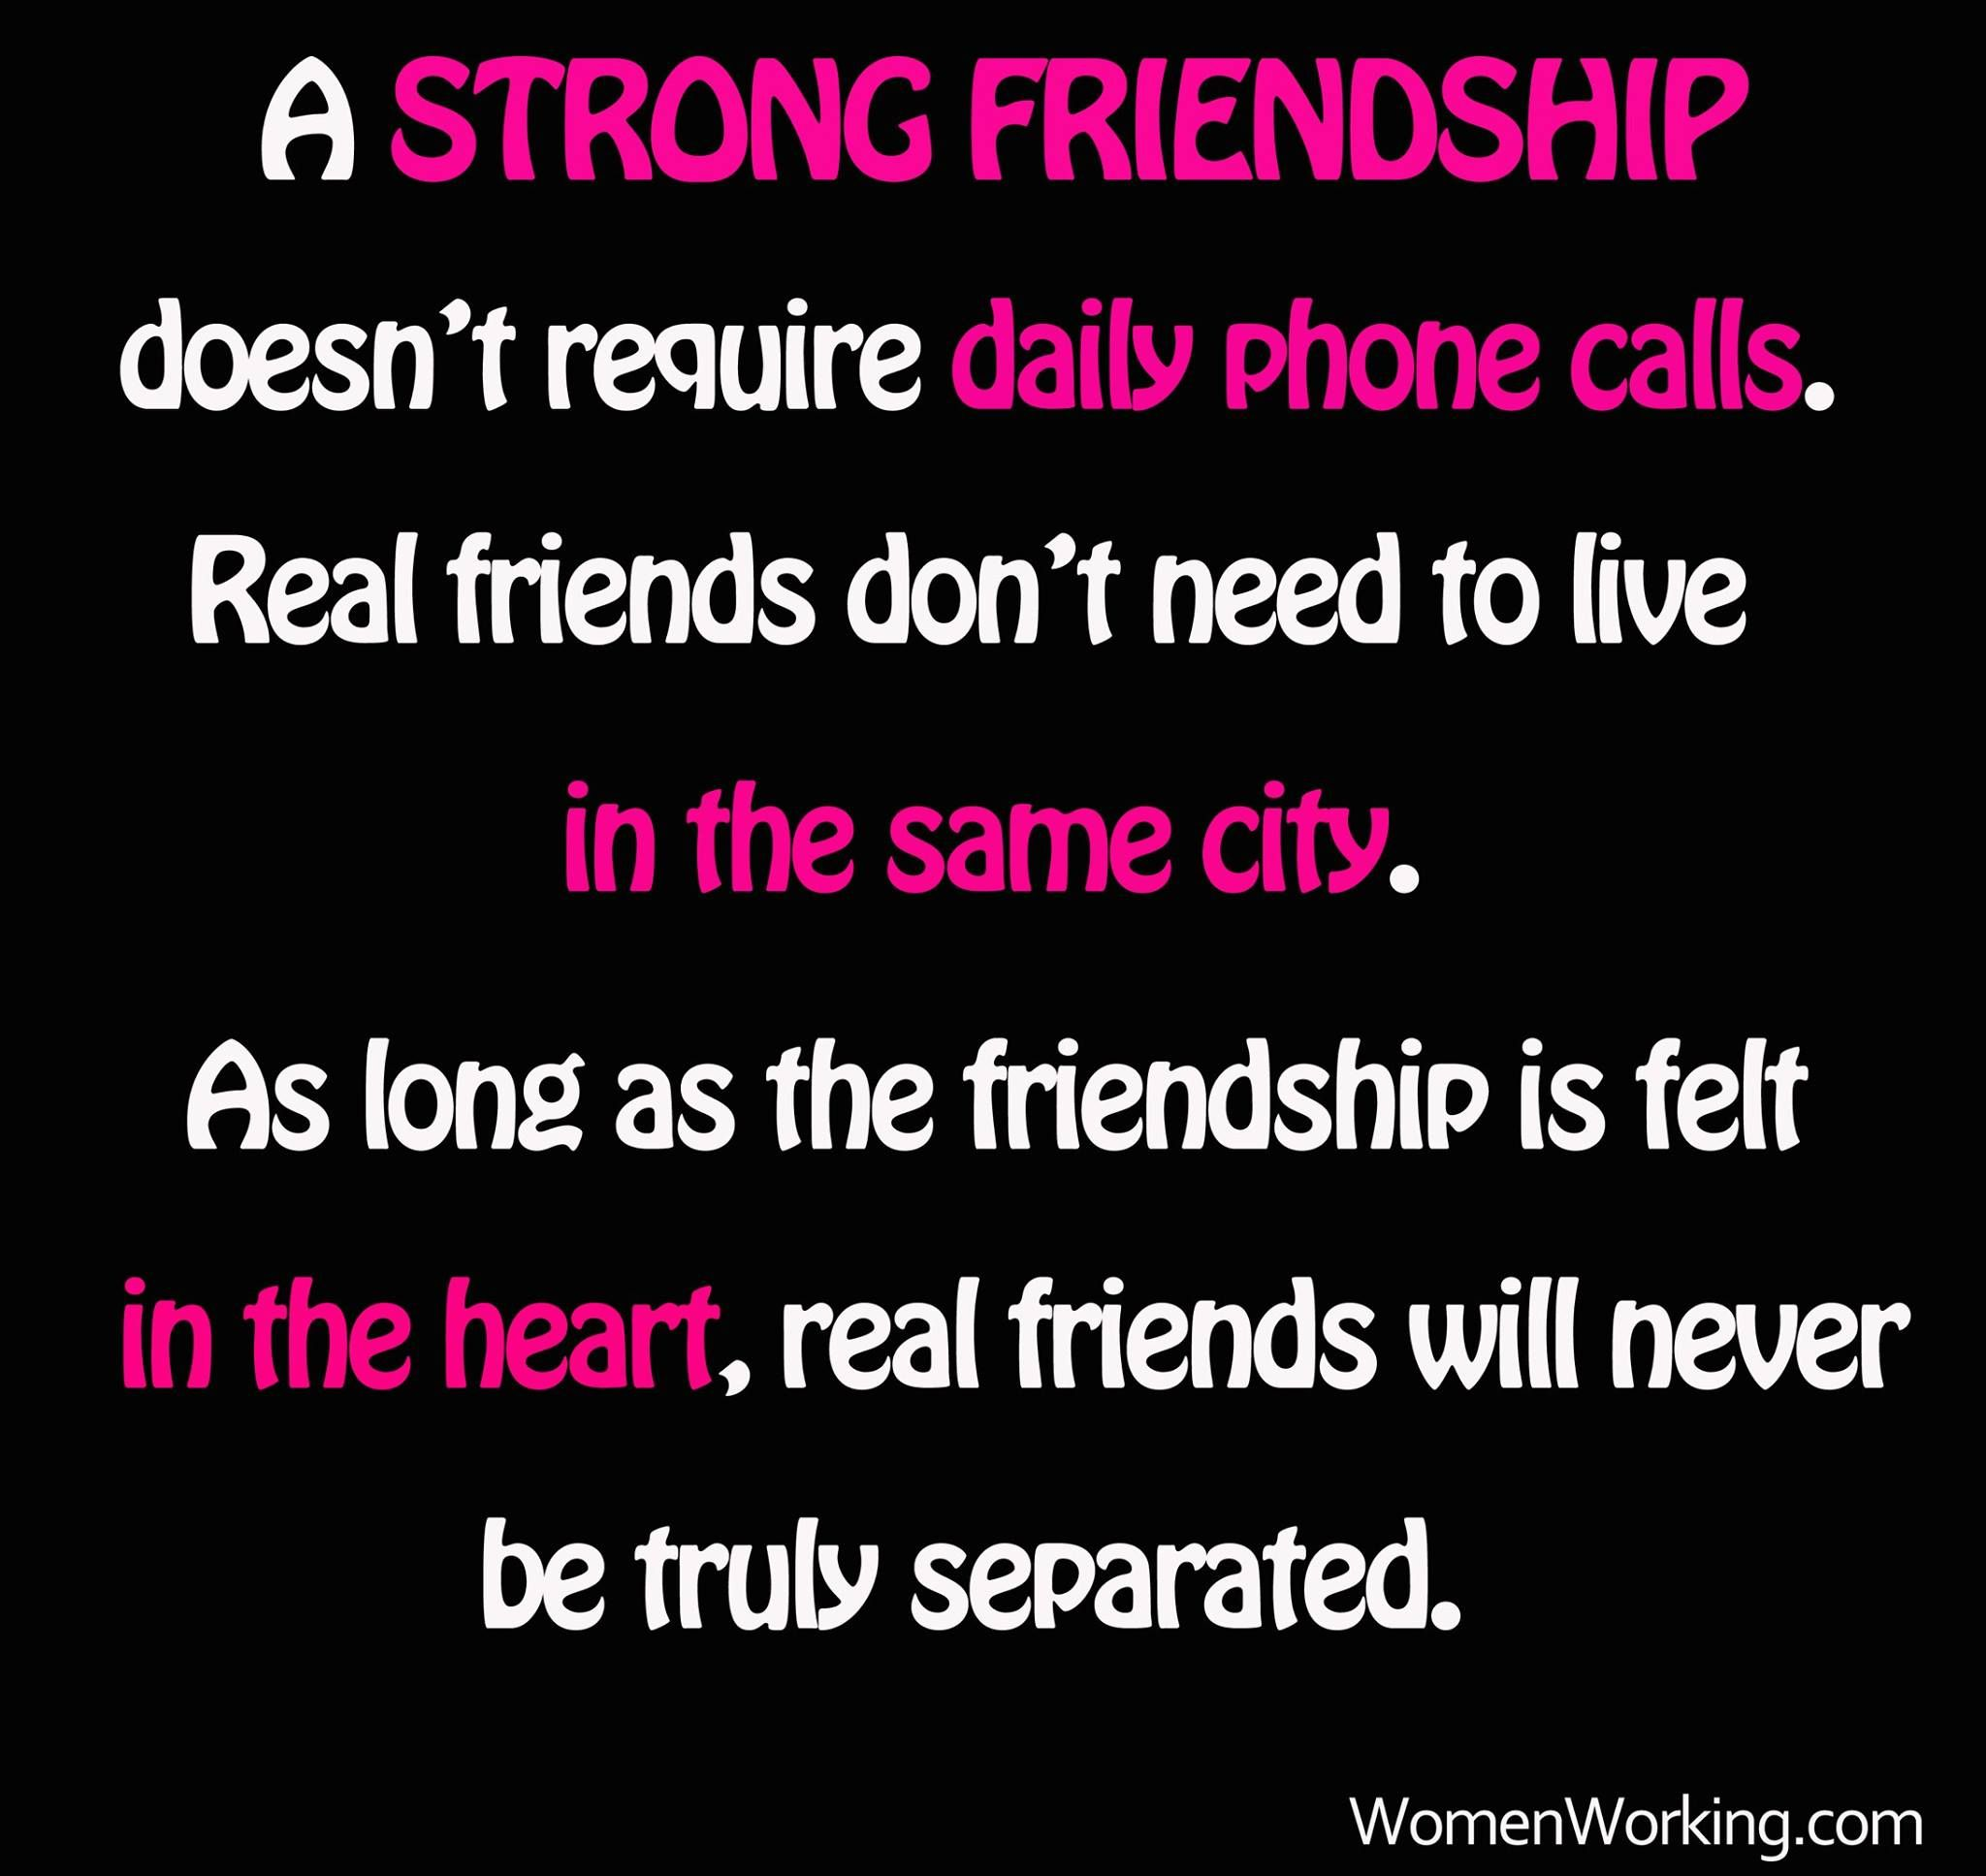 Quotes About Strong Friendship A Strong Friendship Doesn't Require Daily Phone Callsreal